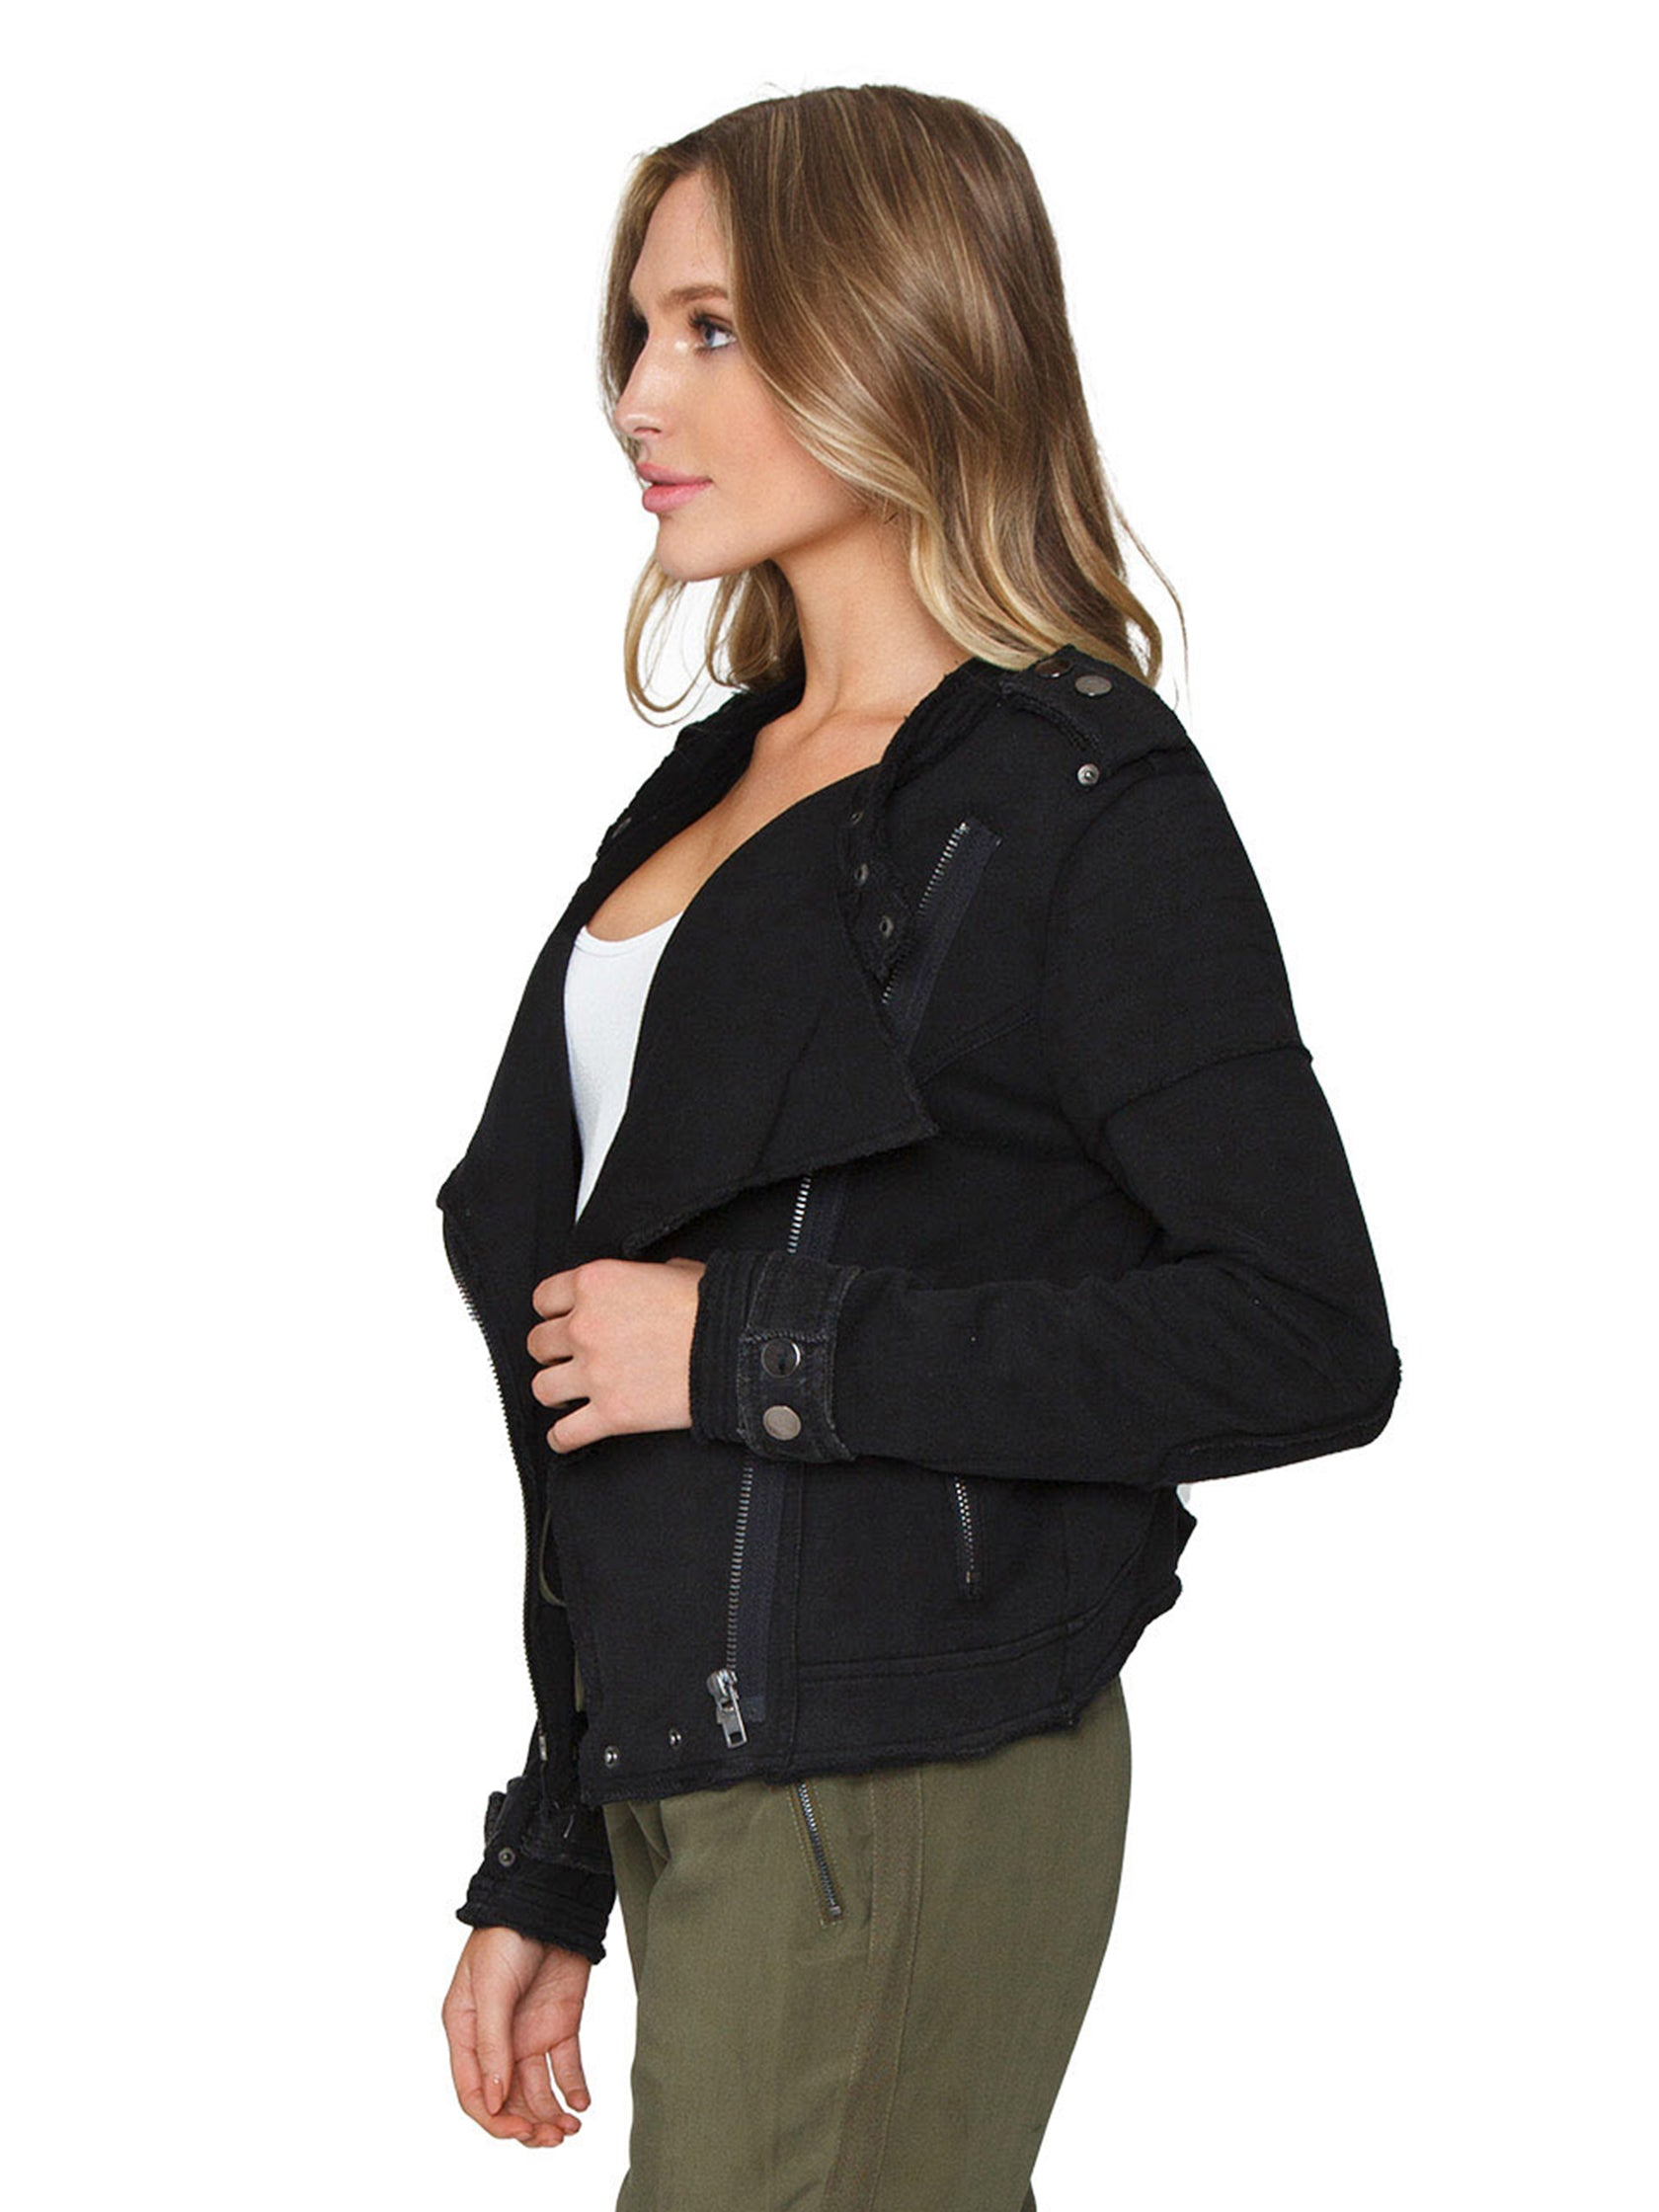 Women wearing a jacket rental from FashionPass called Stone Washed Moto Jacket